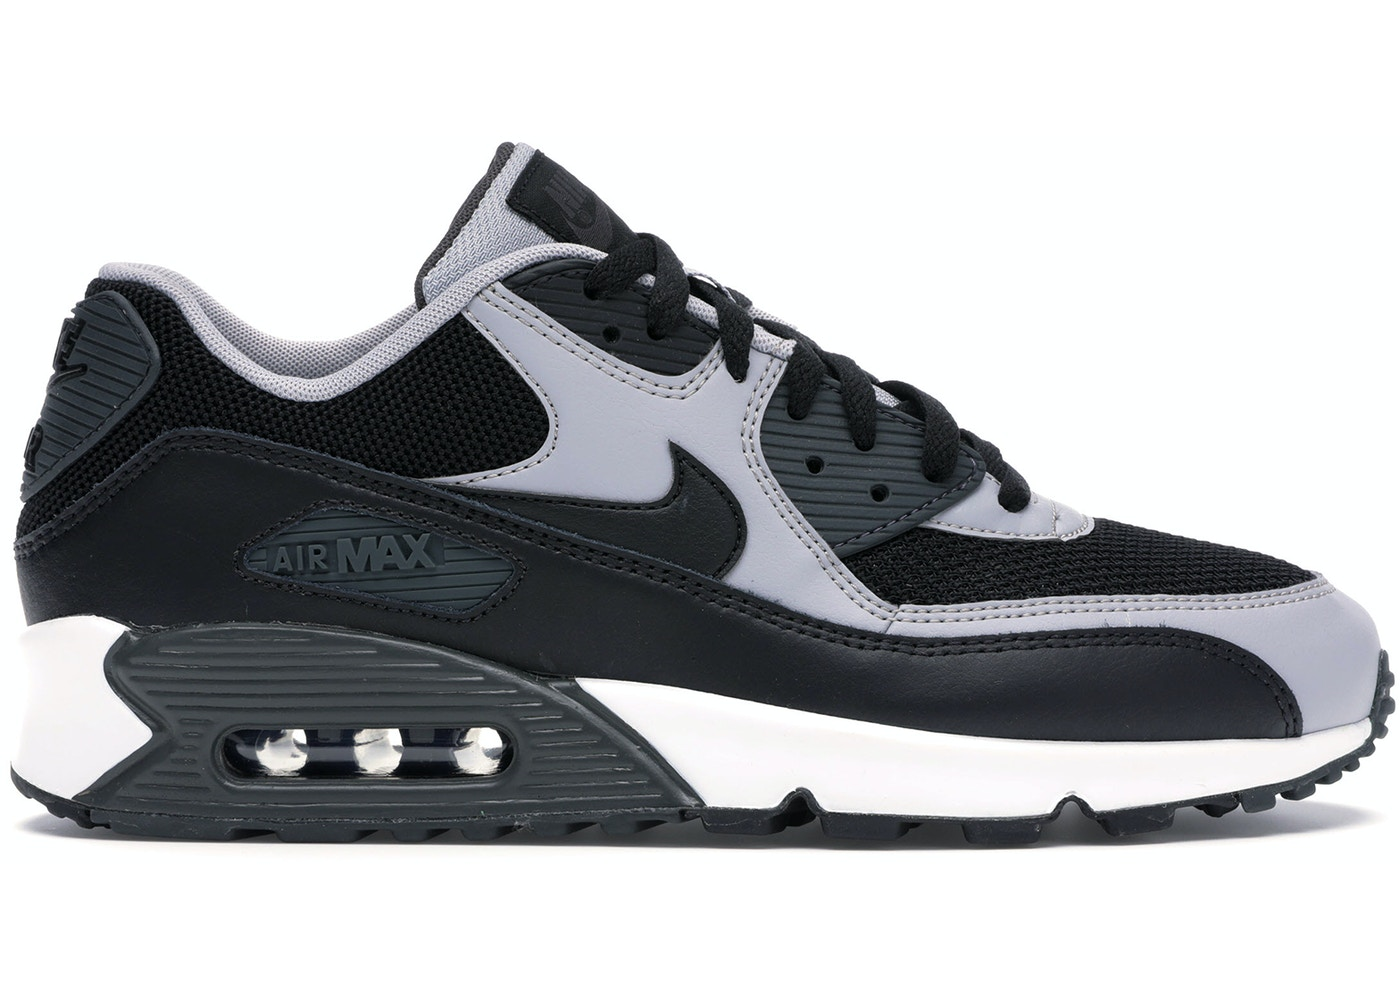 presenting save up to 80% super quality Air Max 90 Black Wolf Grey